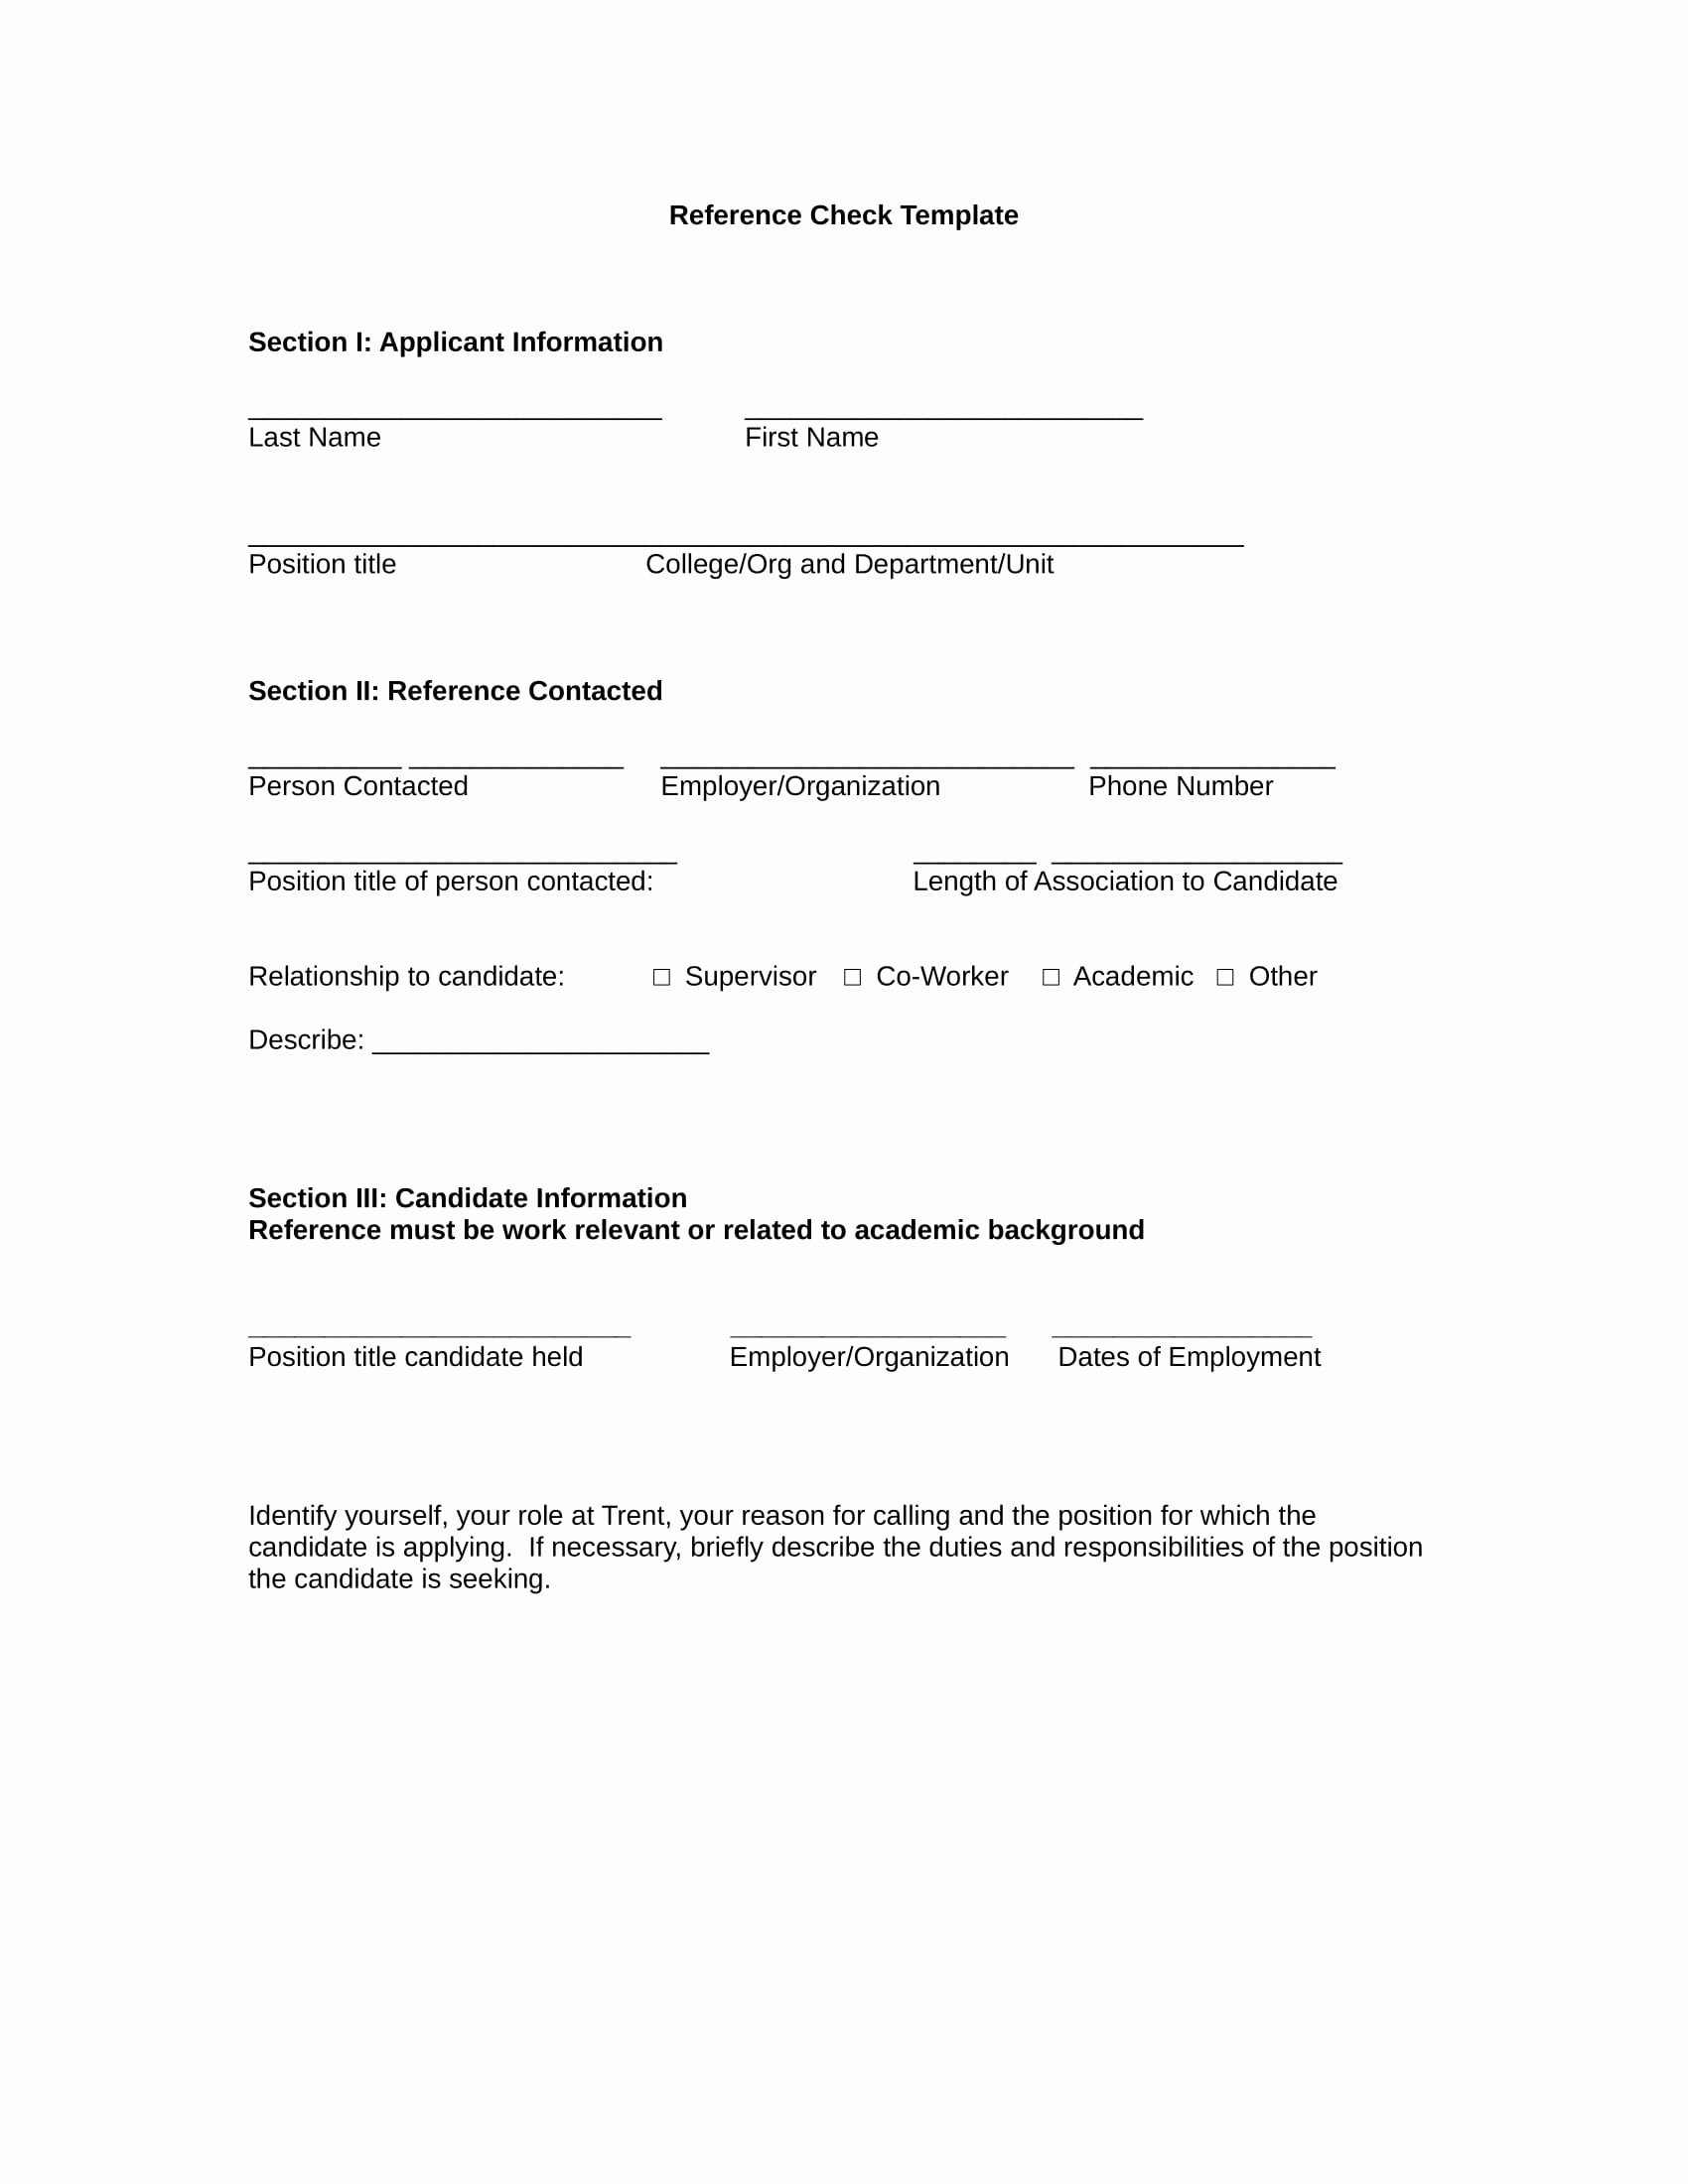 Reference Check form Template Best Of 11 Reference Checking forms & Templates Pdf Doc